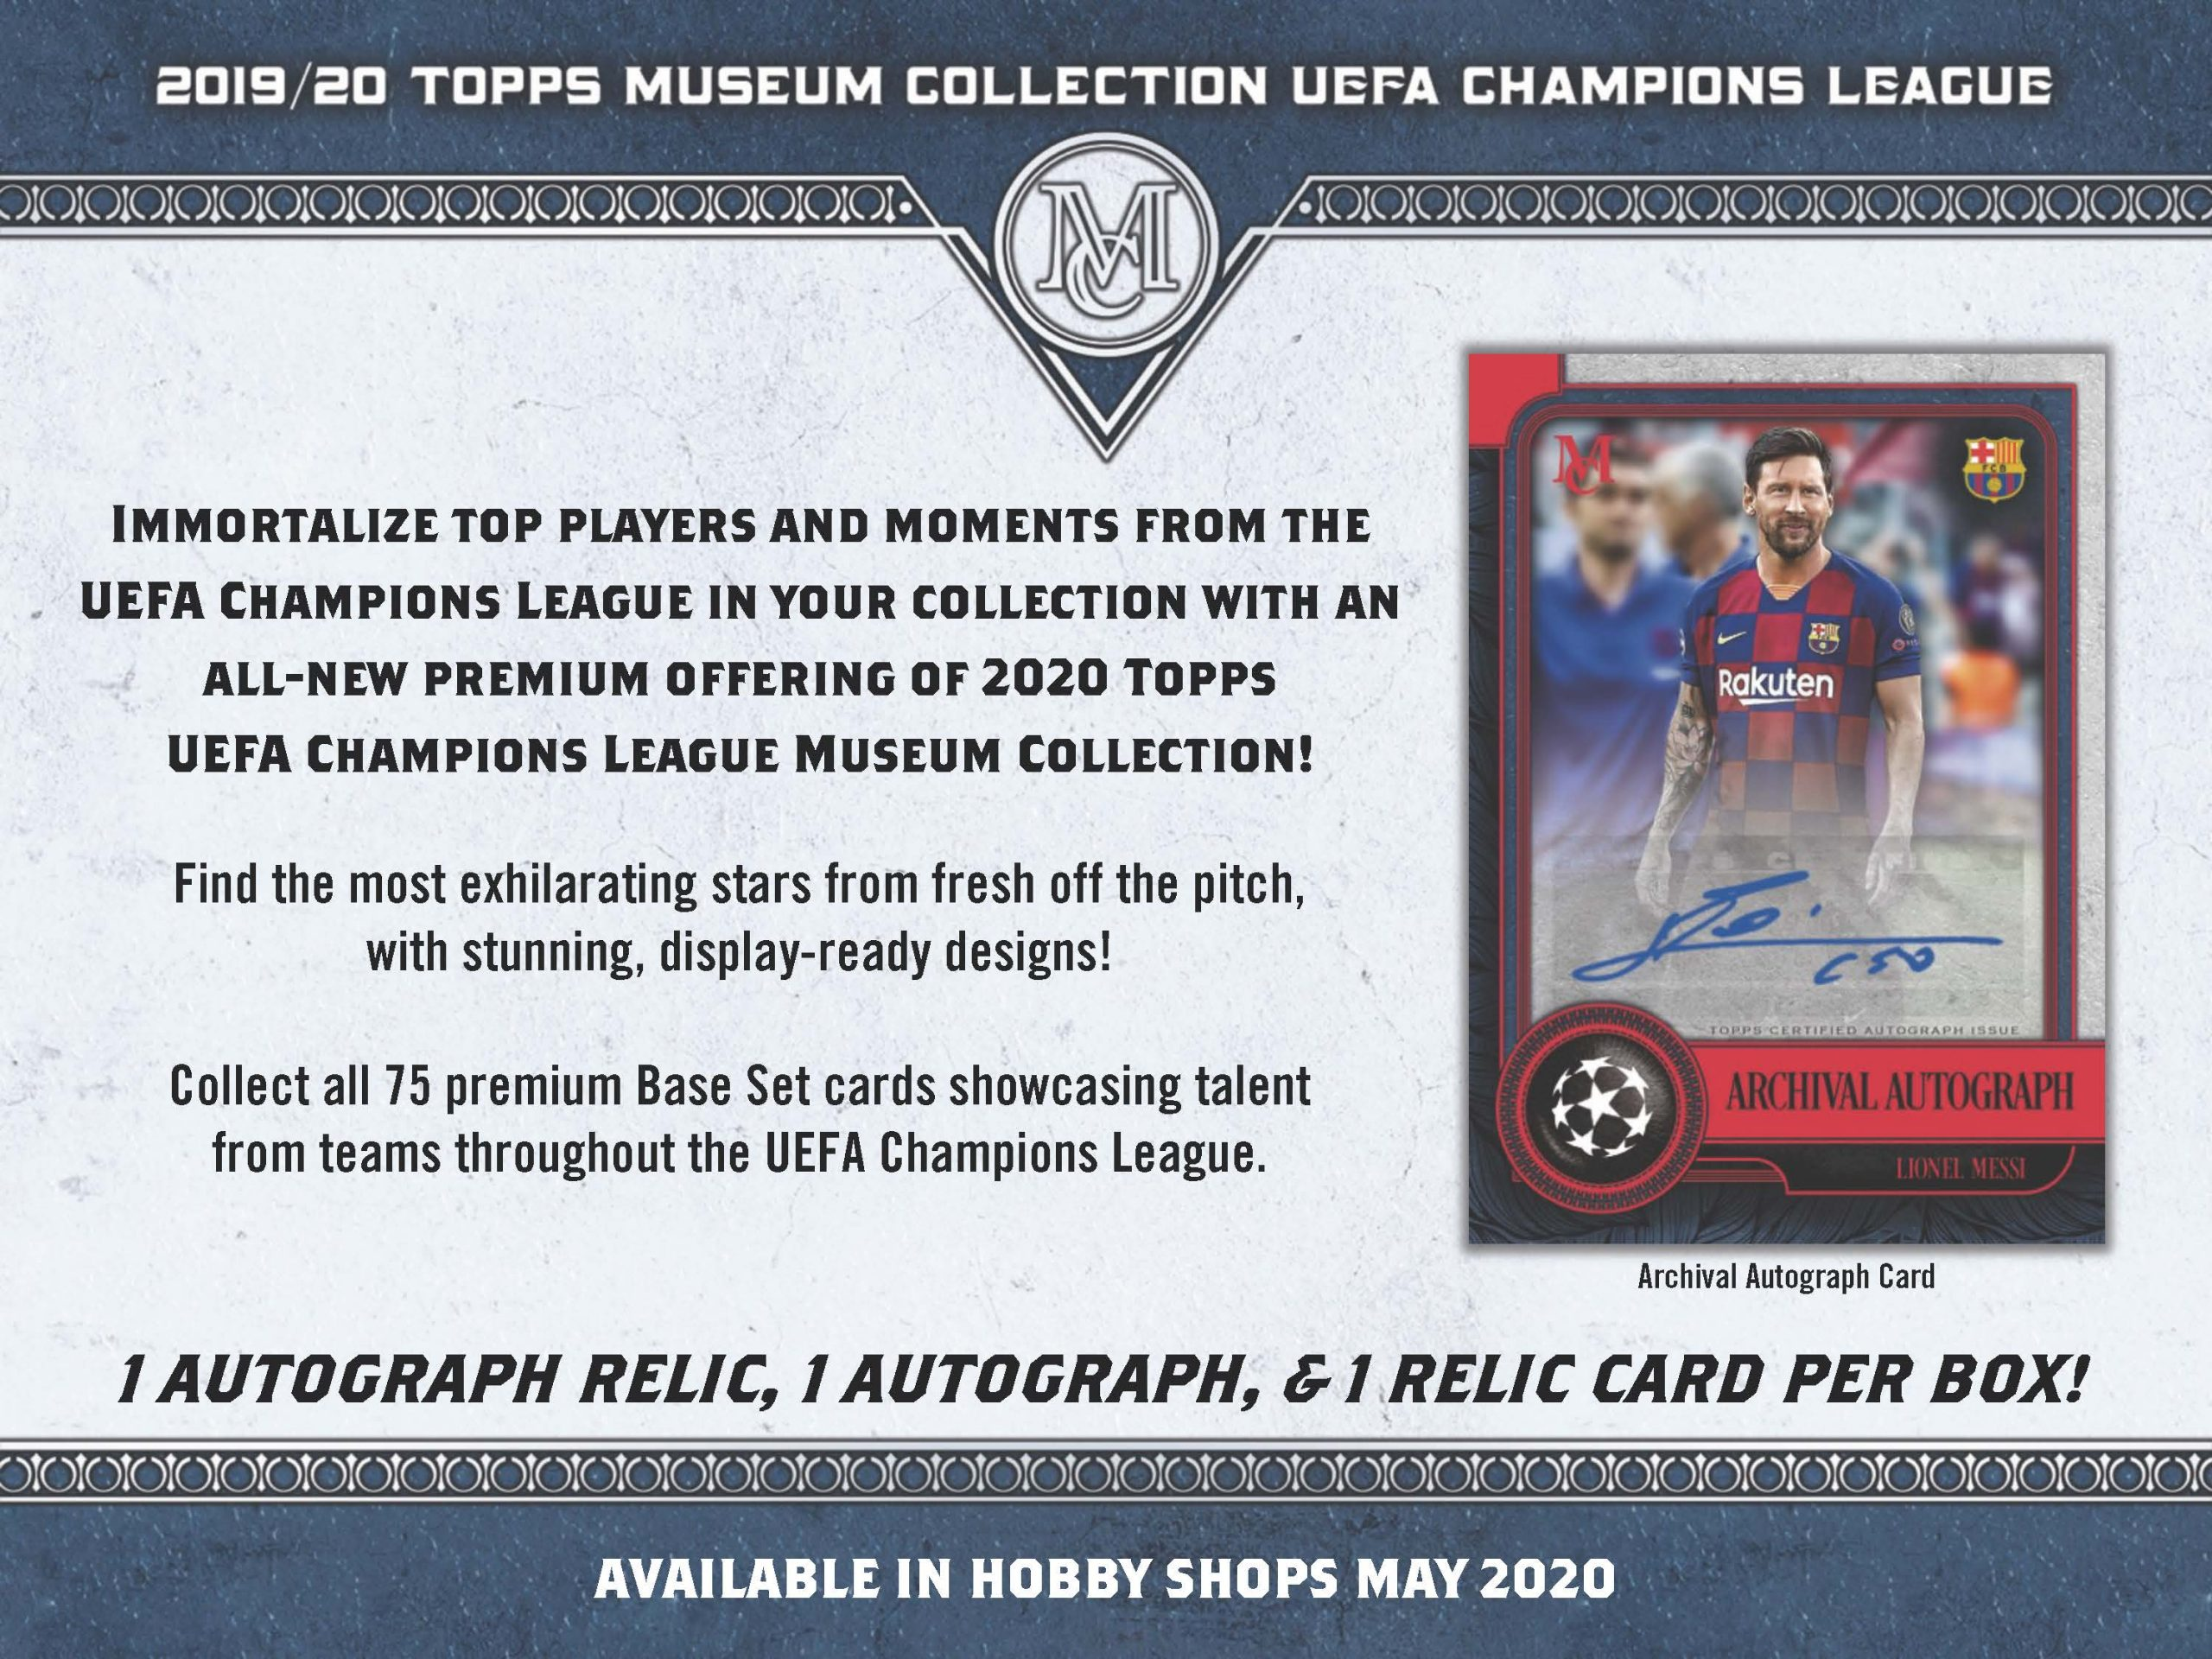 2019-20 Topps Museum Collection UEFA Champions League Soccer Checklist